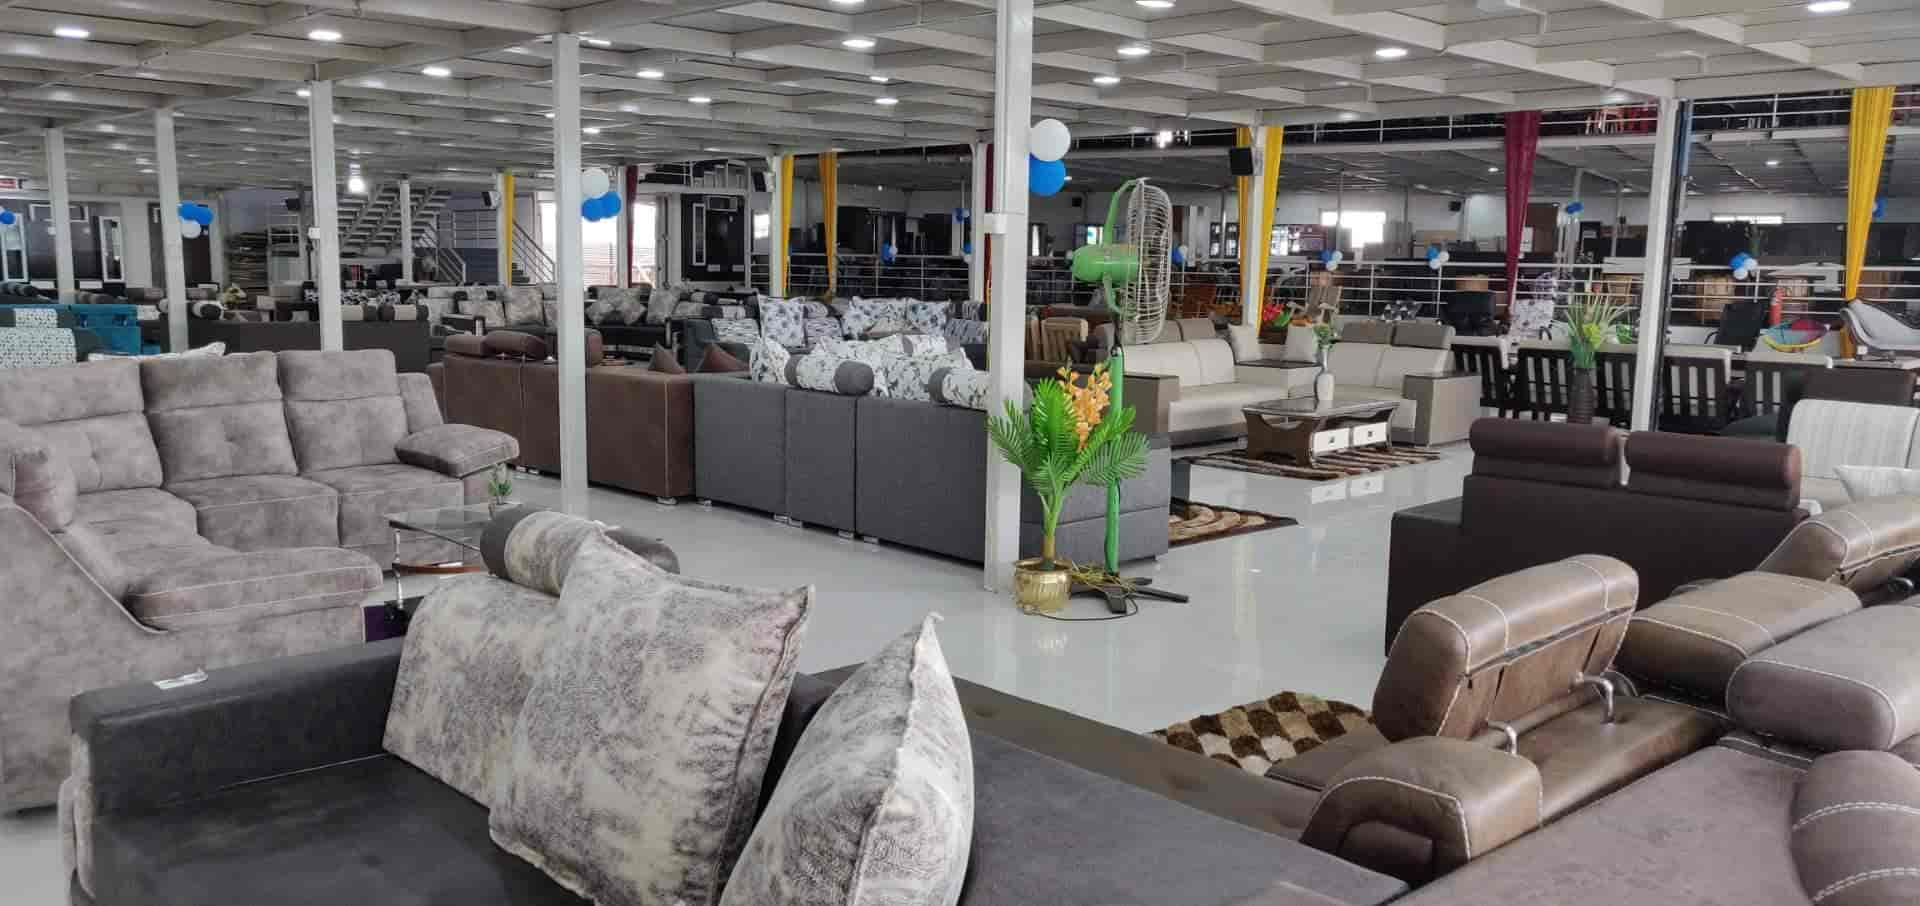 Lucky Furniture Mall Panjim Furniture Dealers In Goa Justdial